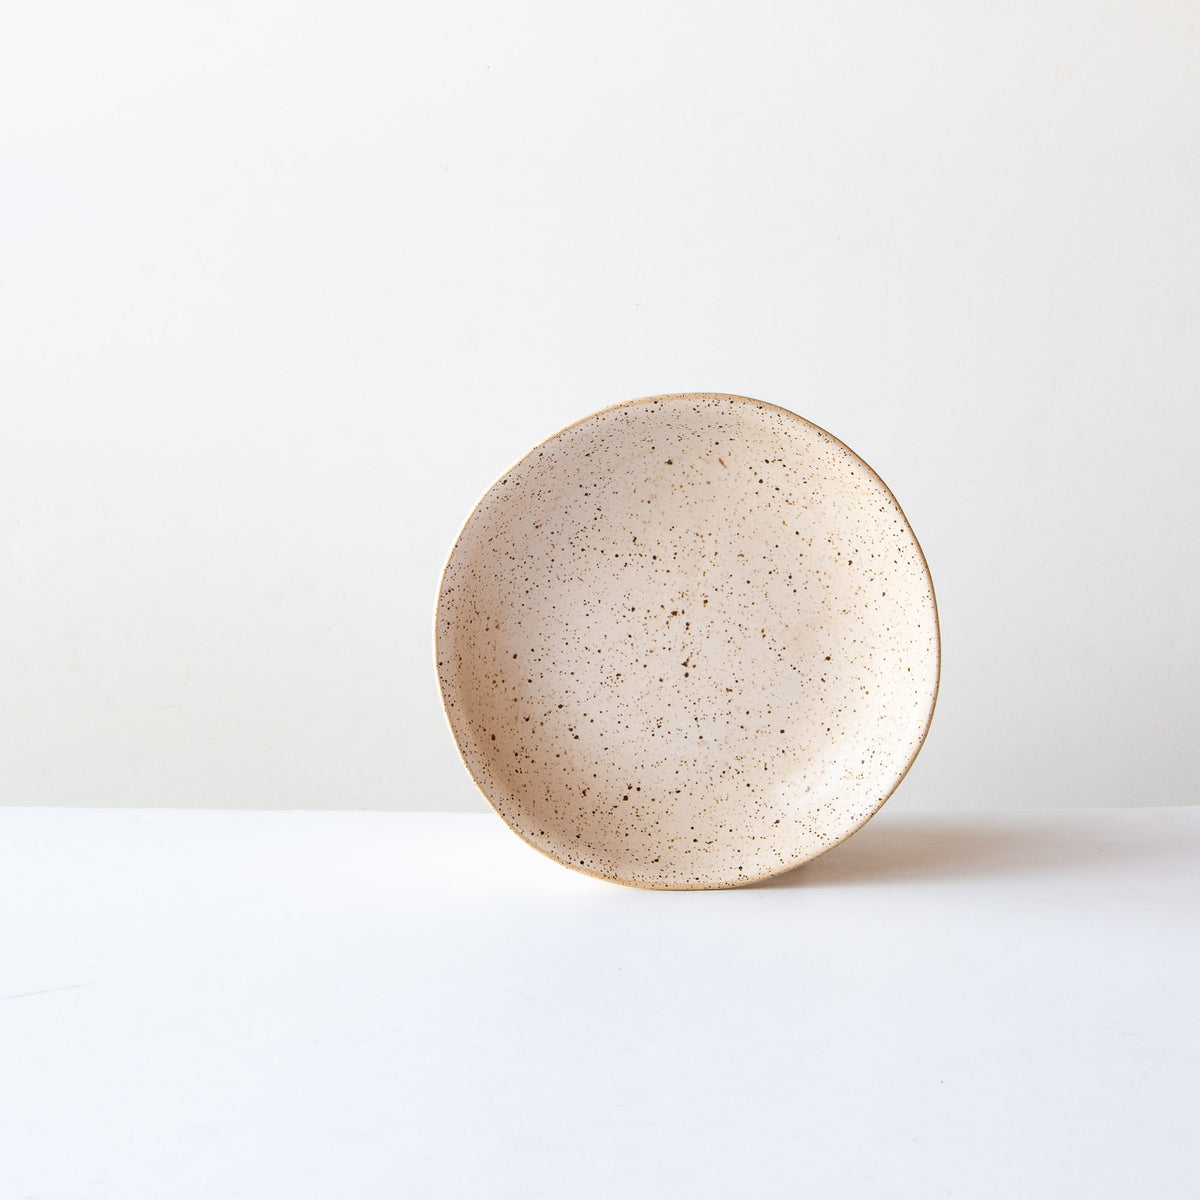 Small Pasta Bowl - Handmade in Off-White Glazed Speckled Stoneware - Sold by Chic & Basta